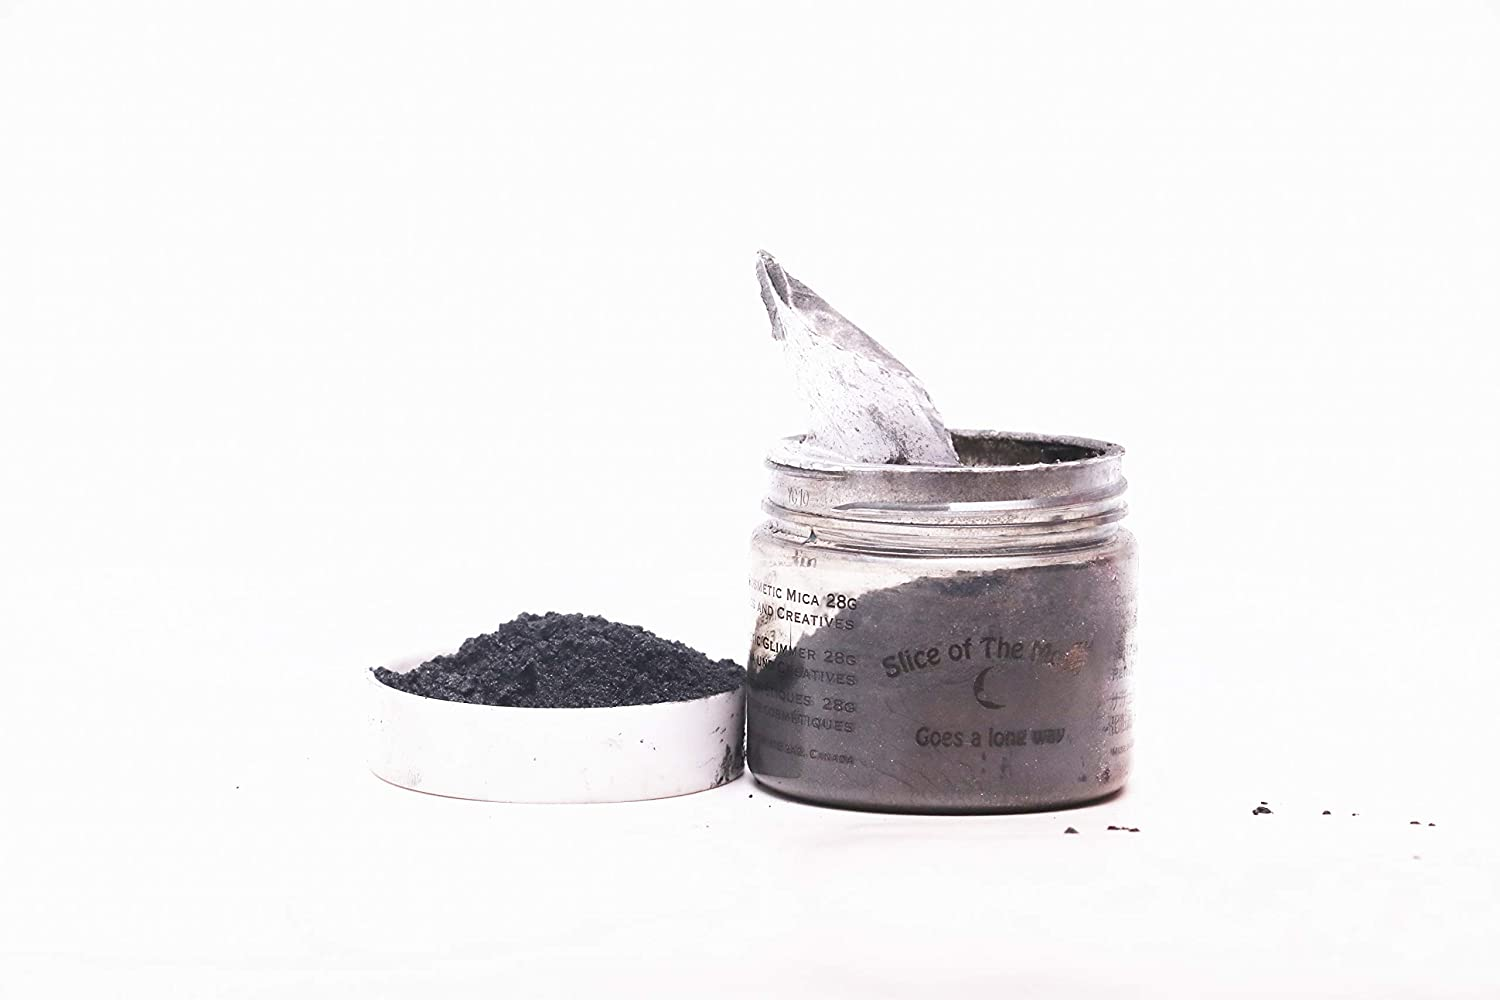 Slice Of The Moon Black Mica Powder Cosmetic, 15g EKS Entertainment Group